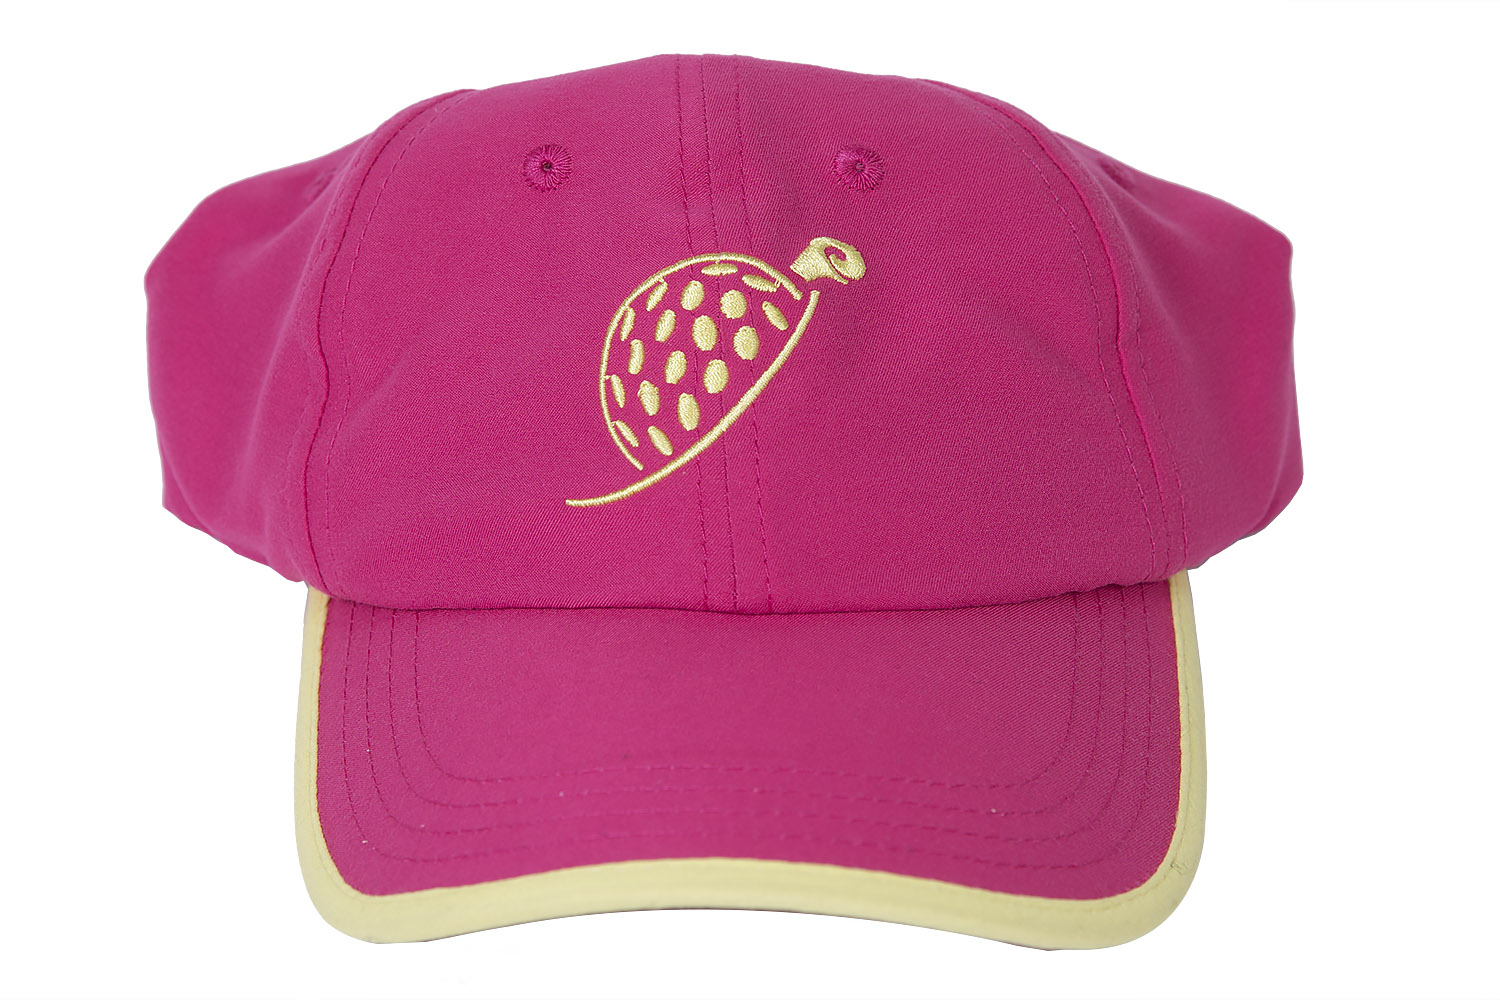 a9a11e48c2d94 Pink Turtle Cap with Take A Swing Print